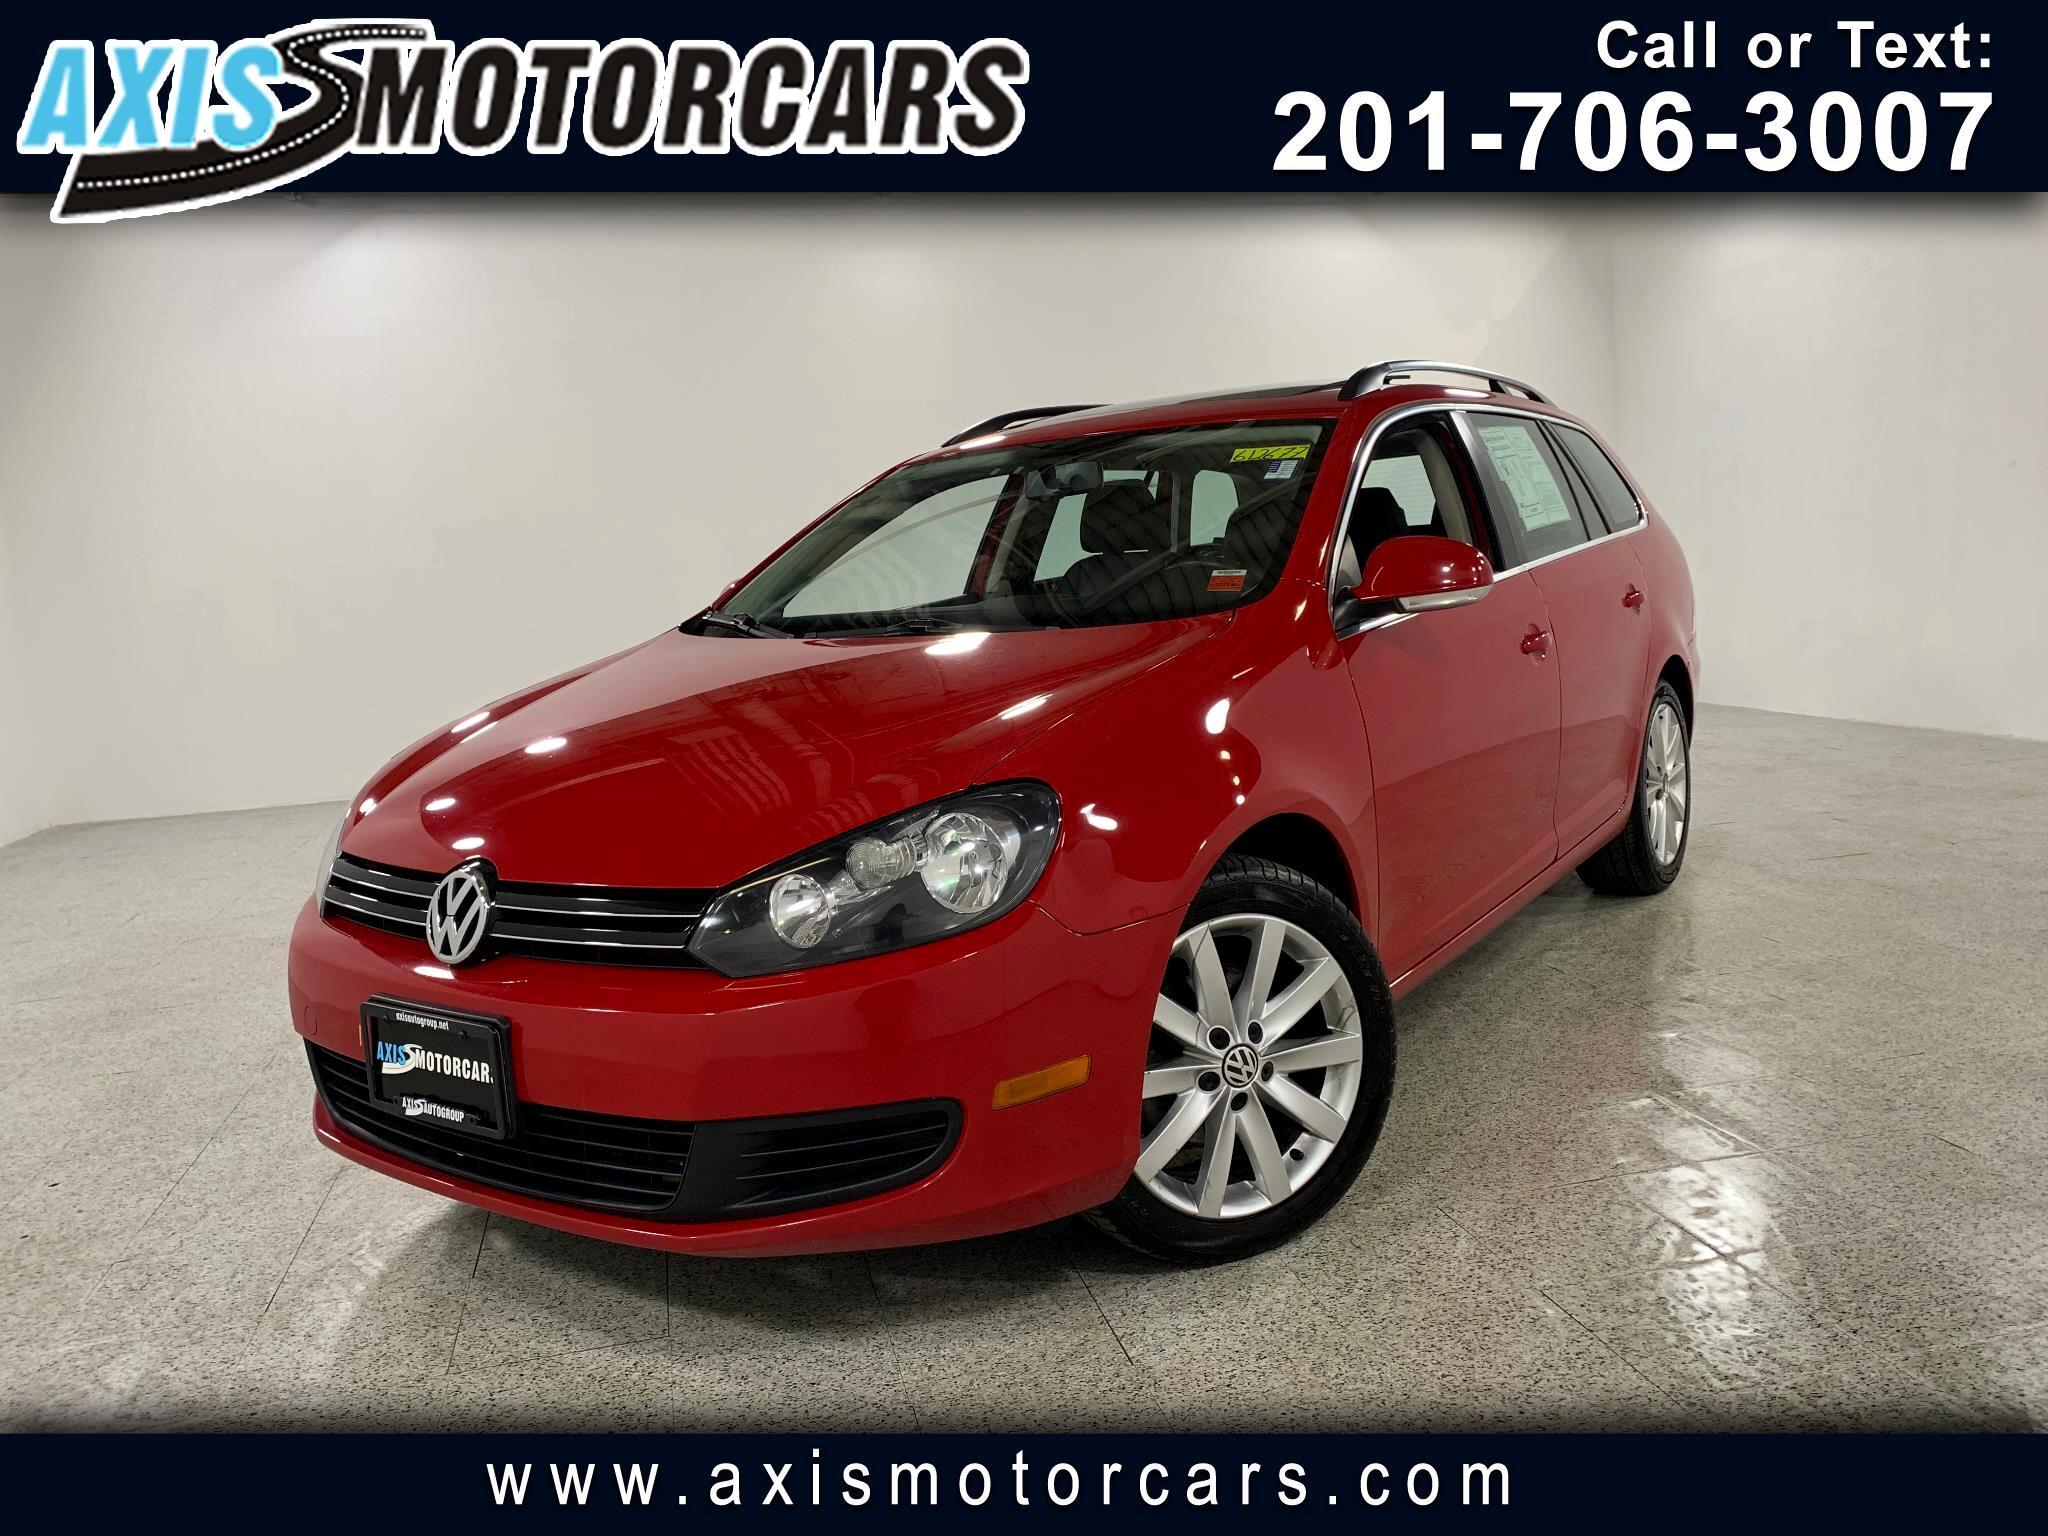 2011 Volkswagen Jetta S w/Panoramic Roof Leather